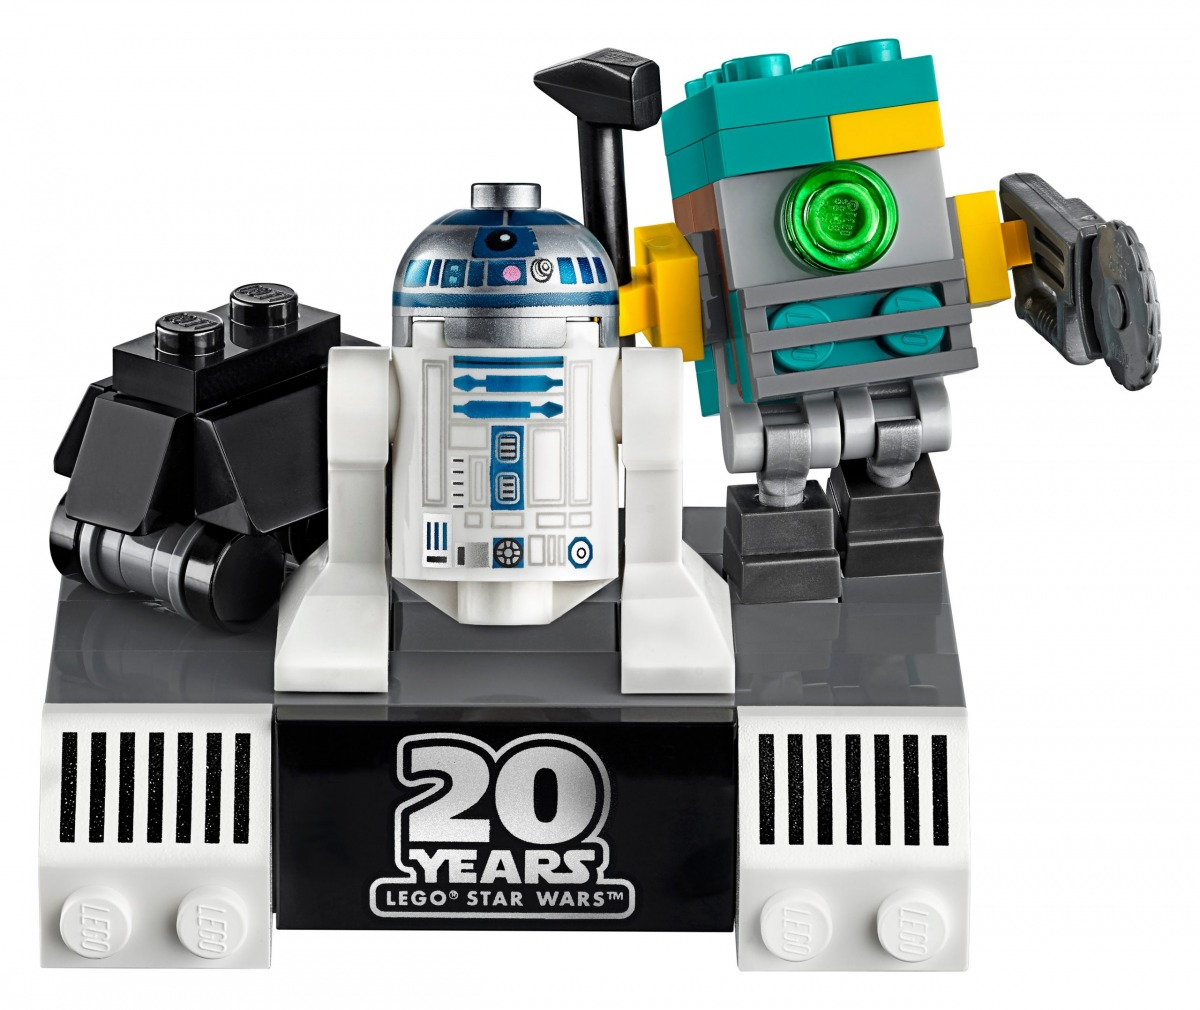 75522 lego 75522 shop ufficiale it scaled